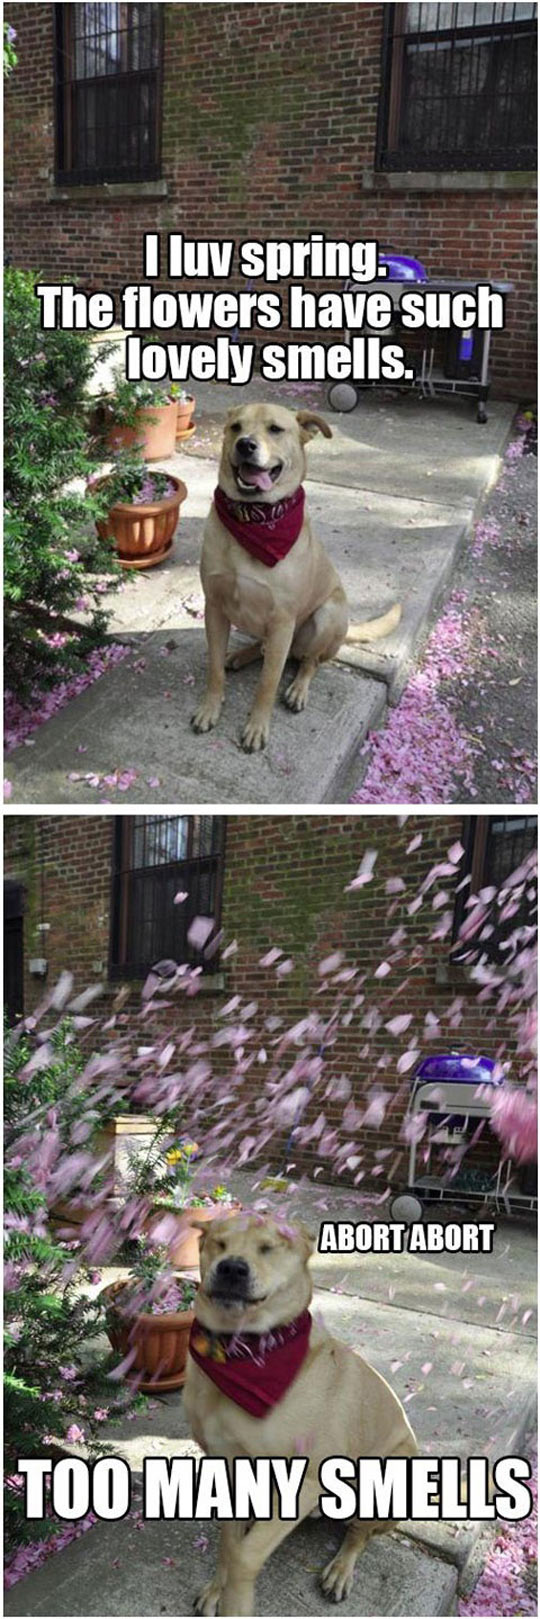 Just Stop And Smell The Flowers